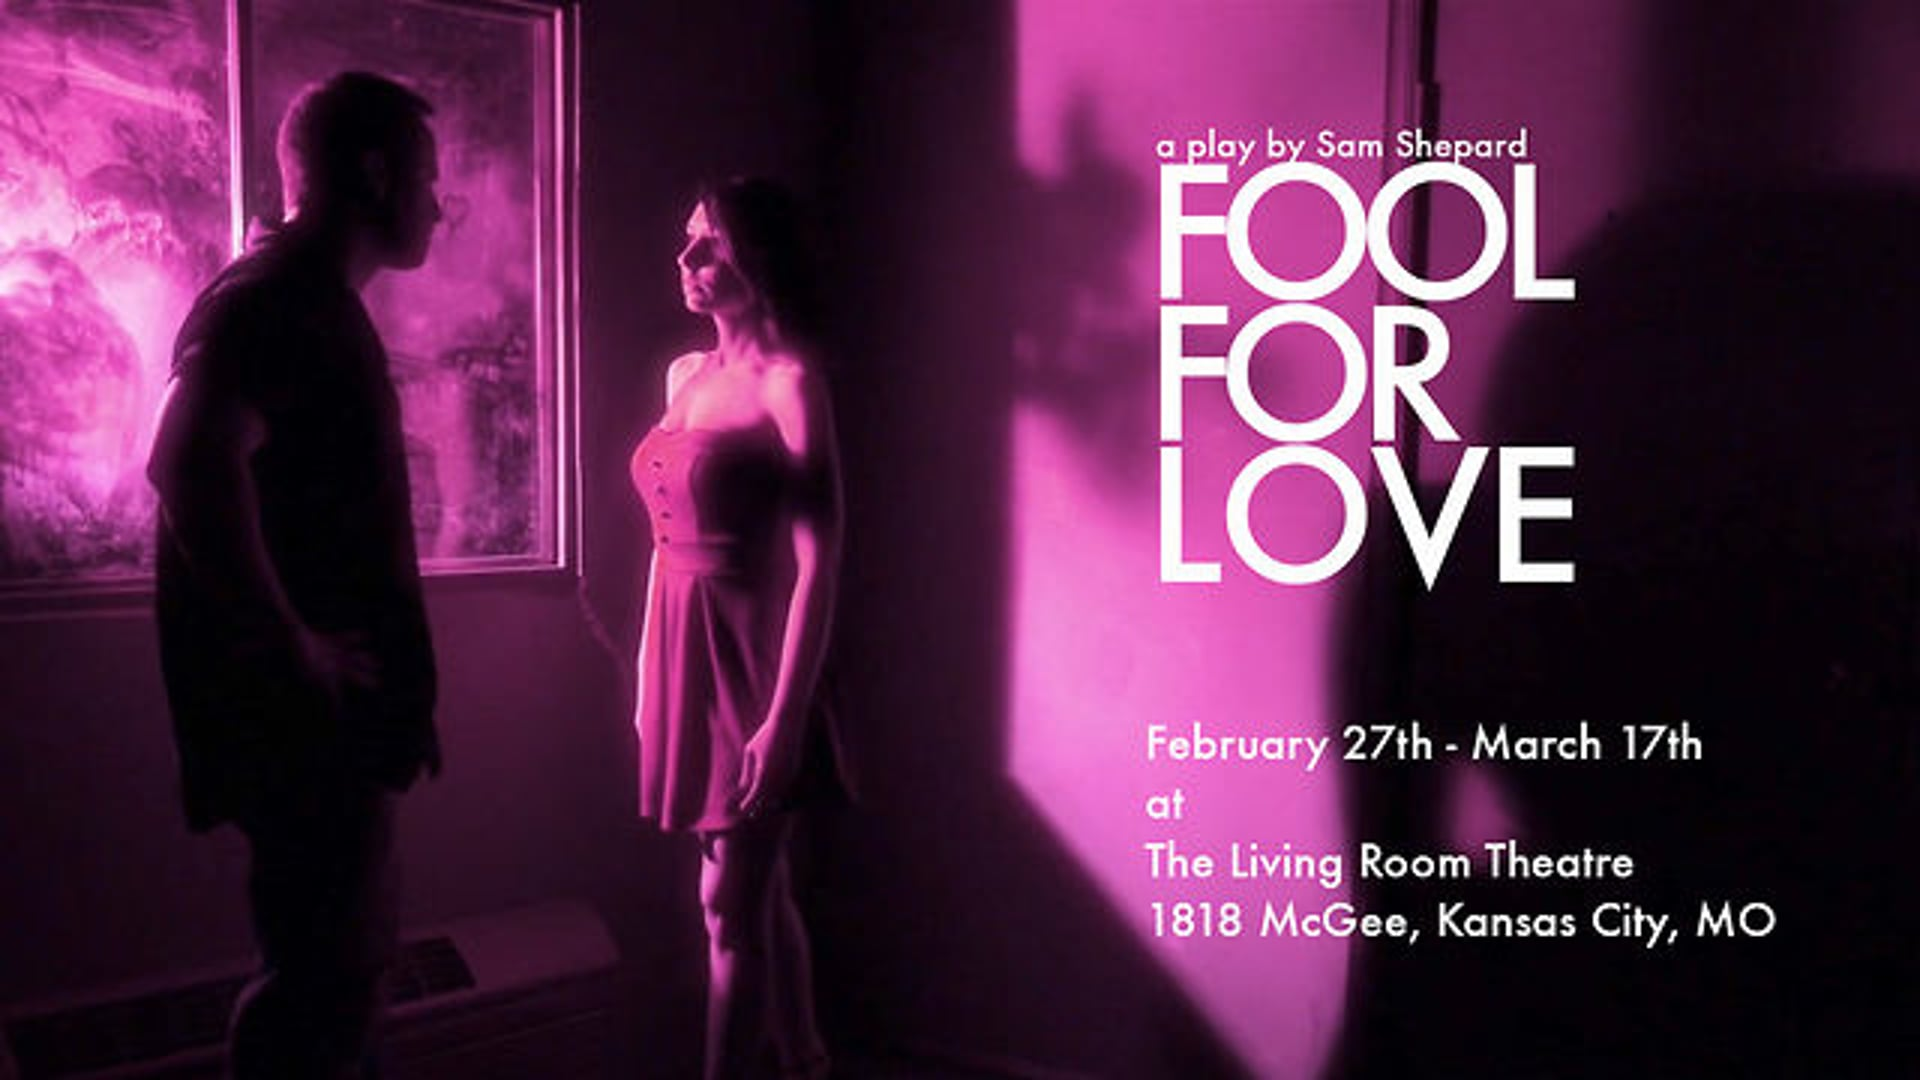 Fool For Love at The Living Room Theatre